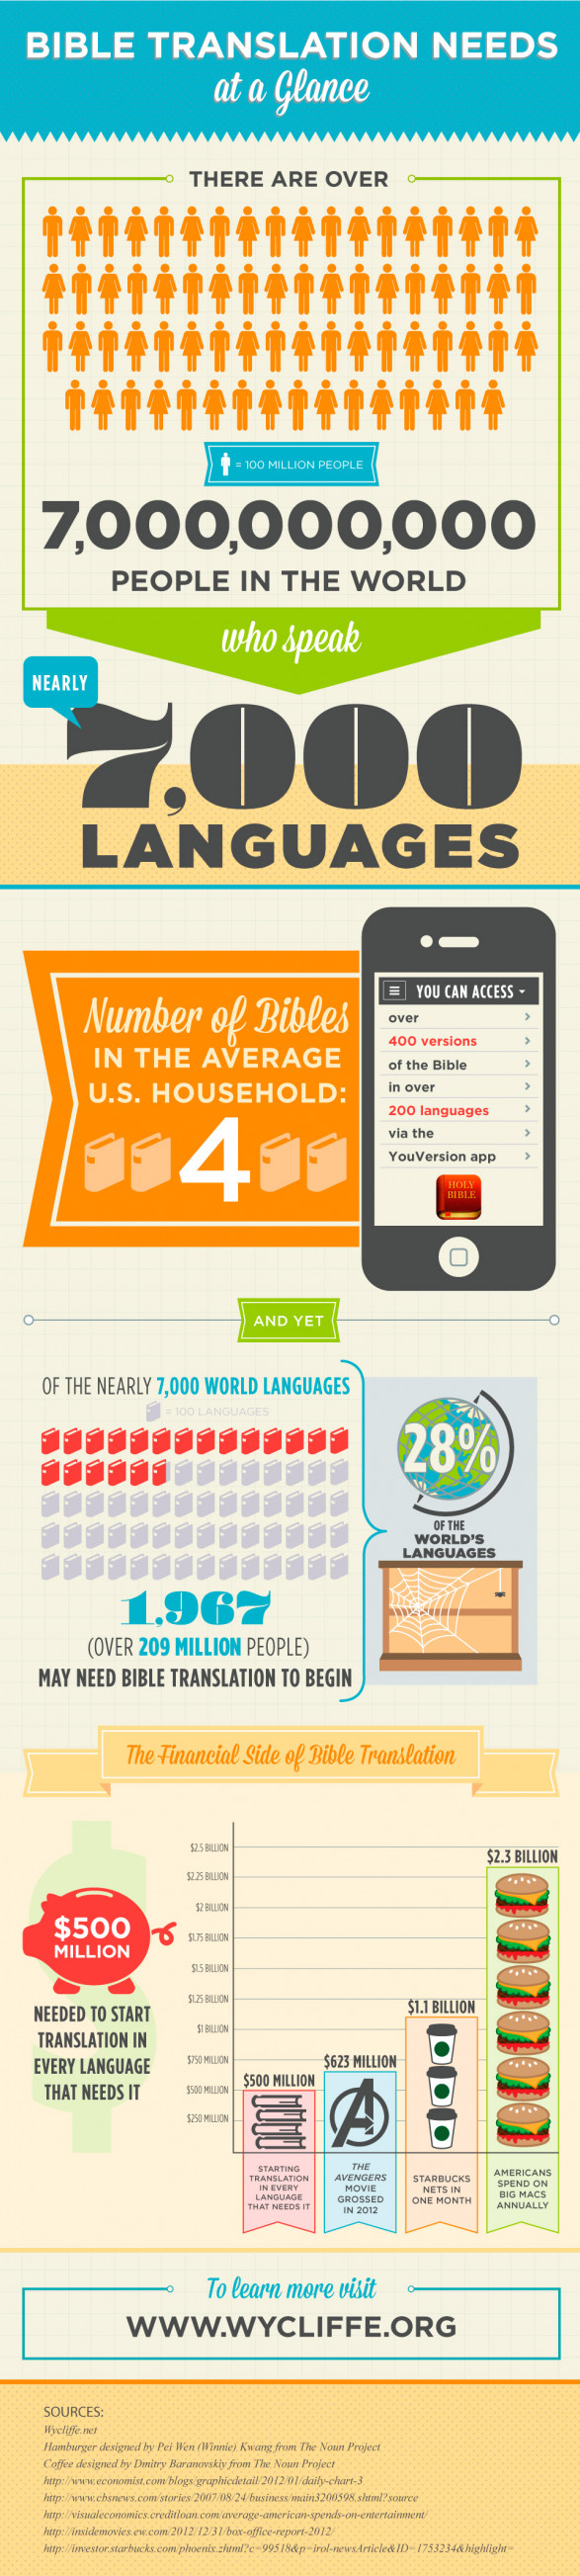 Bible Translation Needs at a Glance